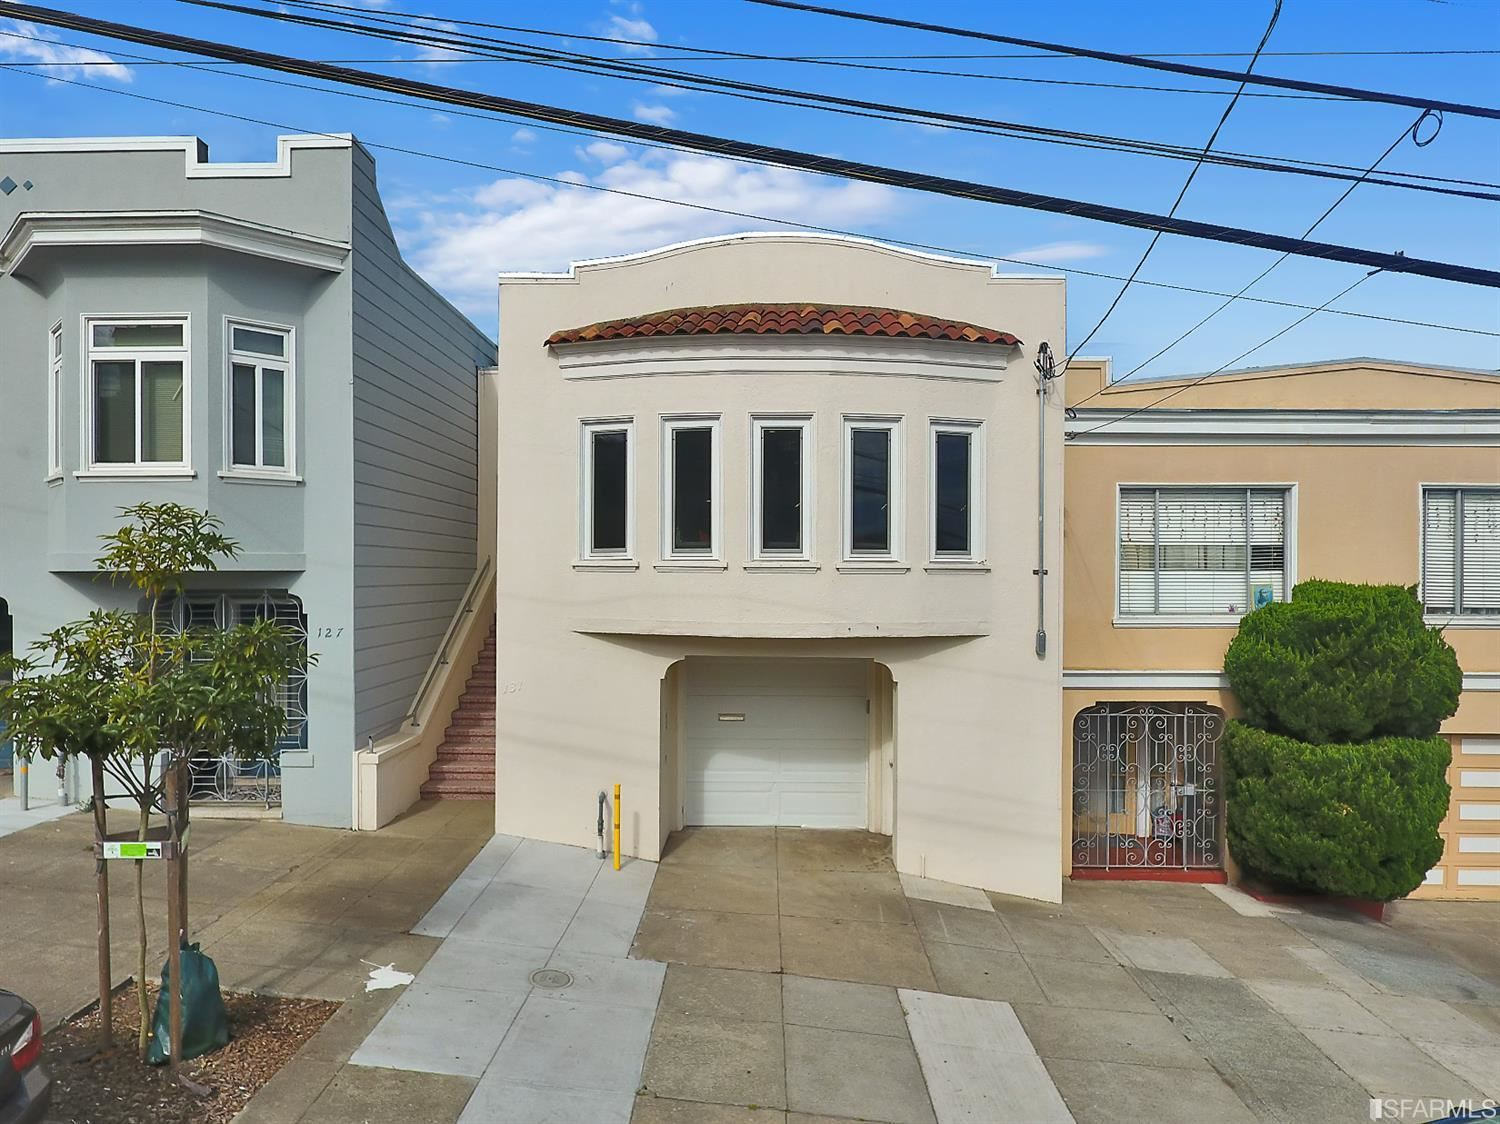 131 Harold Avenue, San Francisco, CA 94112 - #: 504077